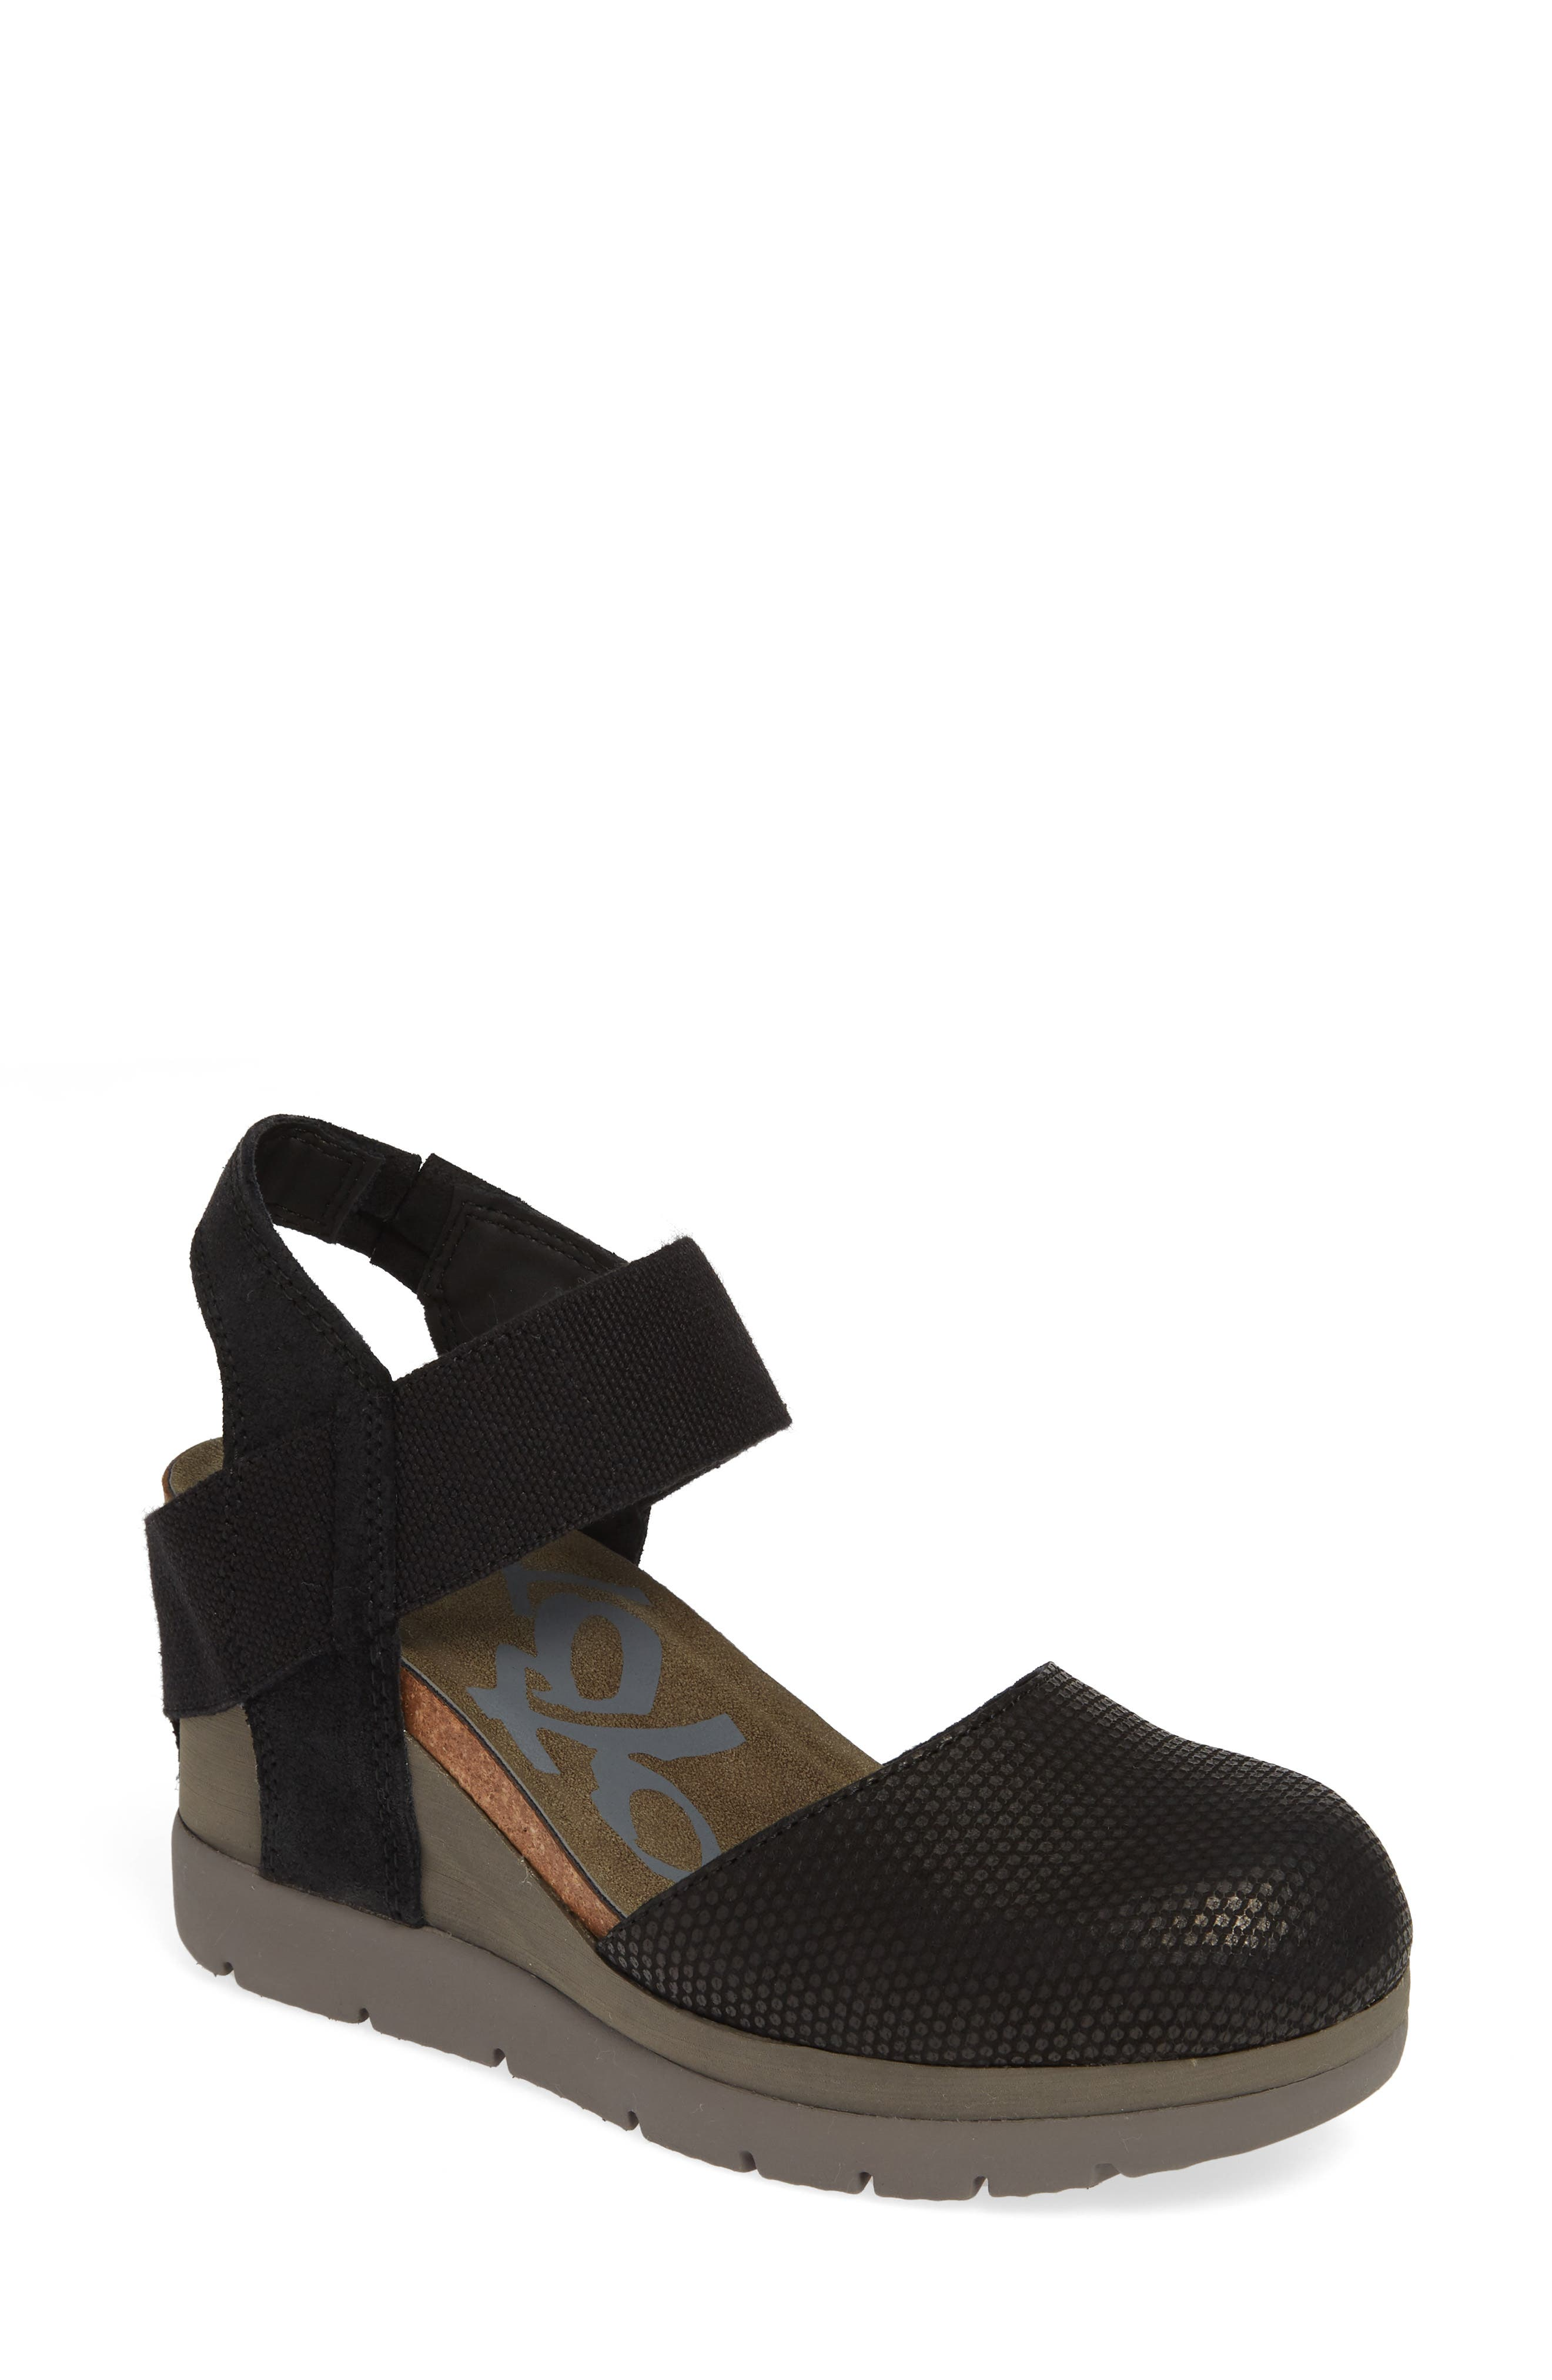 Carry On Wedge Sandal,                             Main thumbnail 1, color,                             BLACK LEATHER